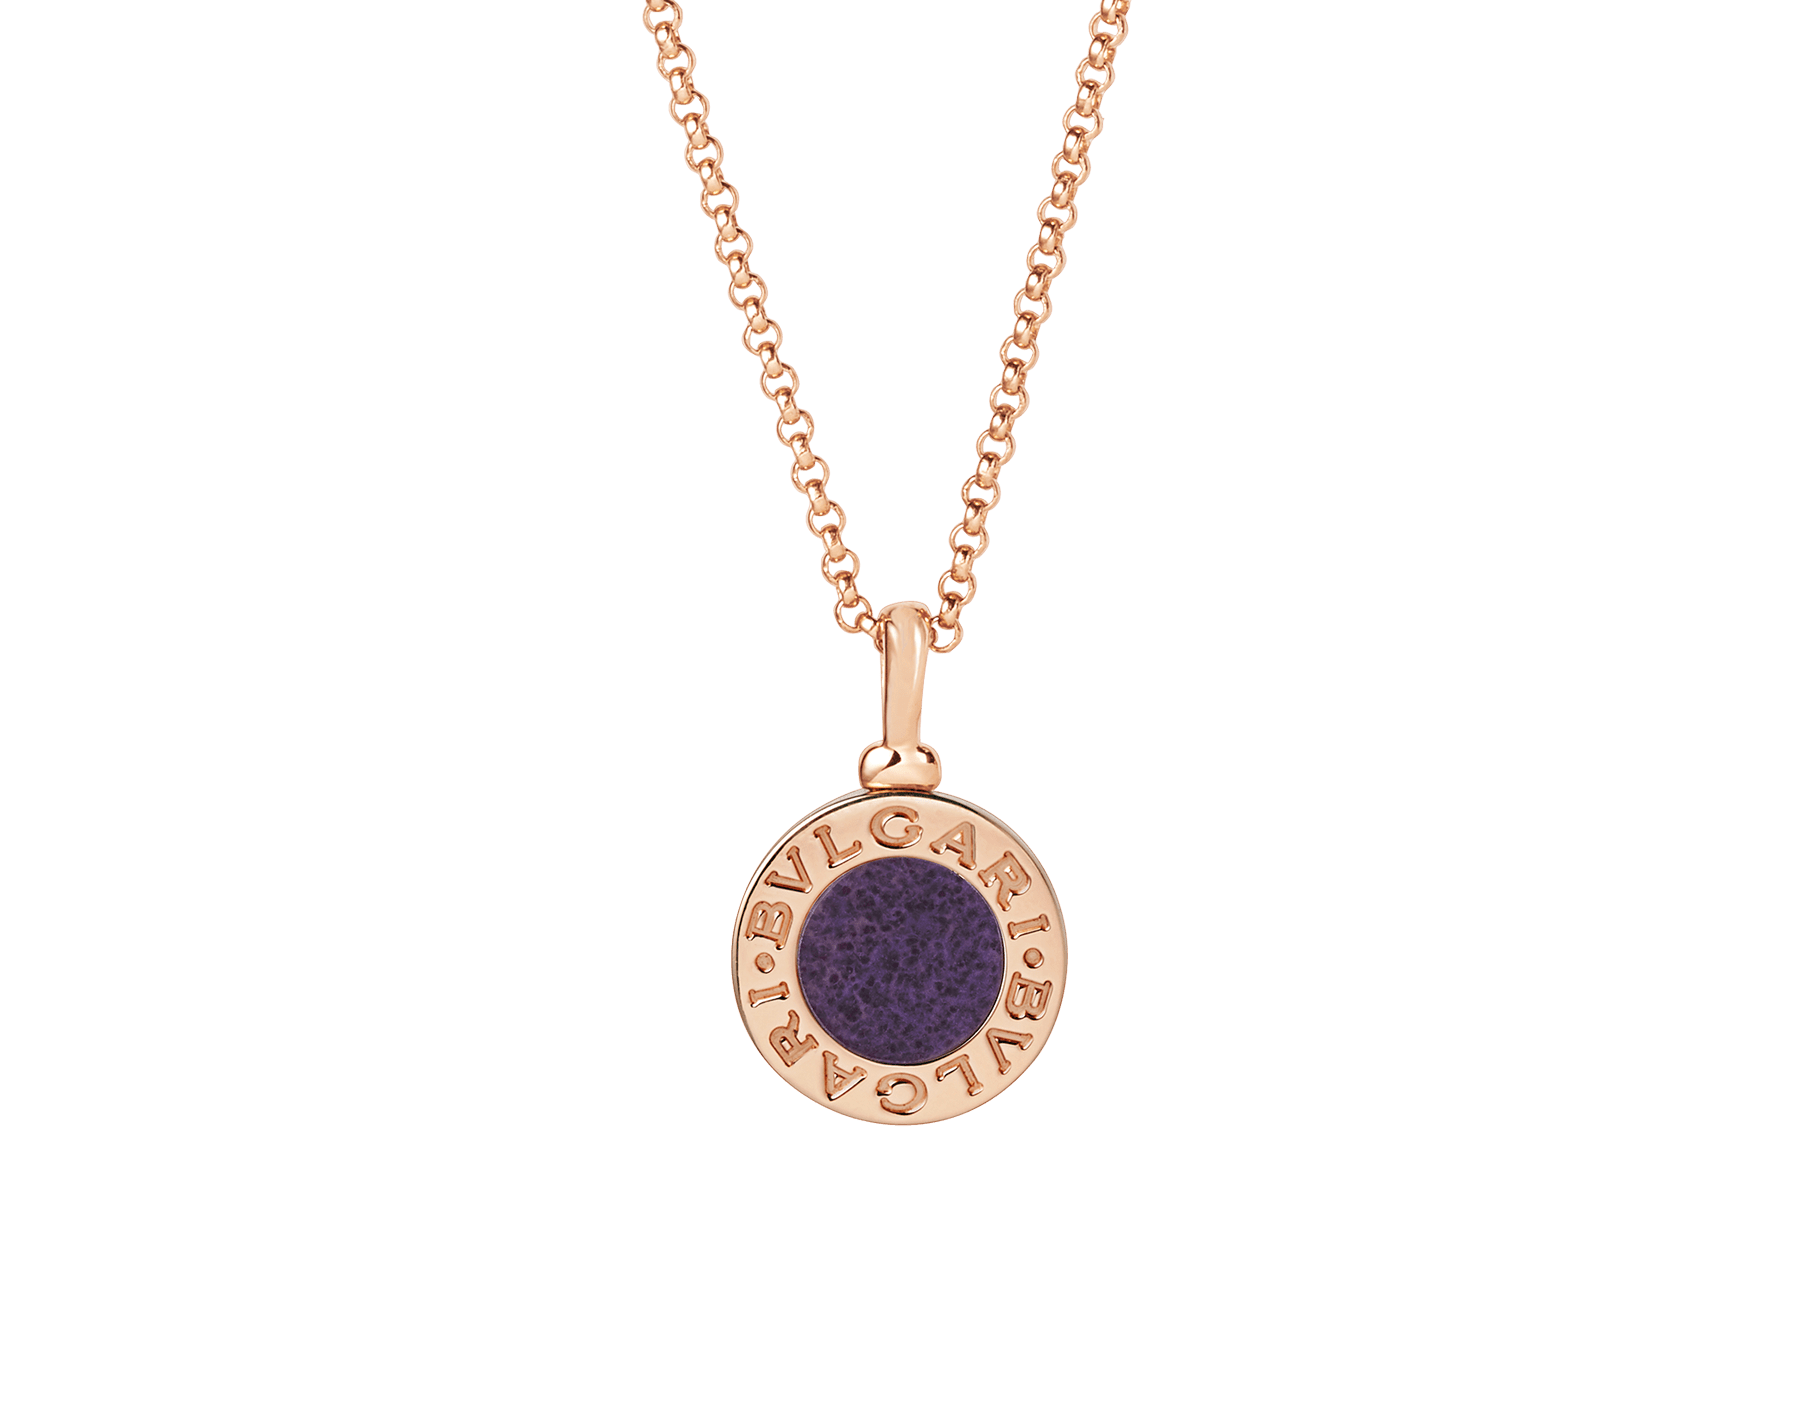 BVLGARI BVLGARI 18 kt rose gold necklace set with sugilite element 356192 image 1